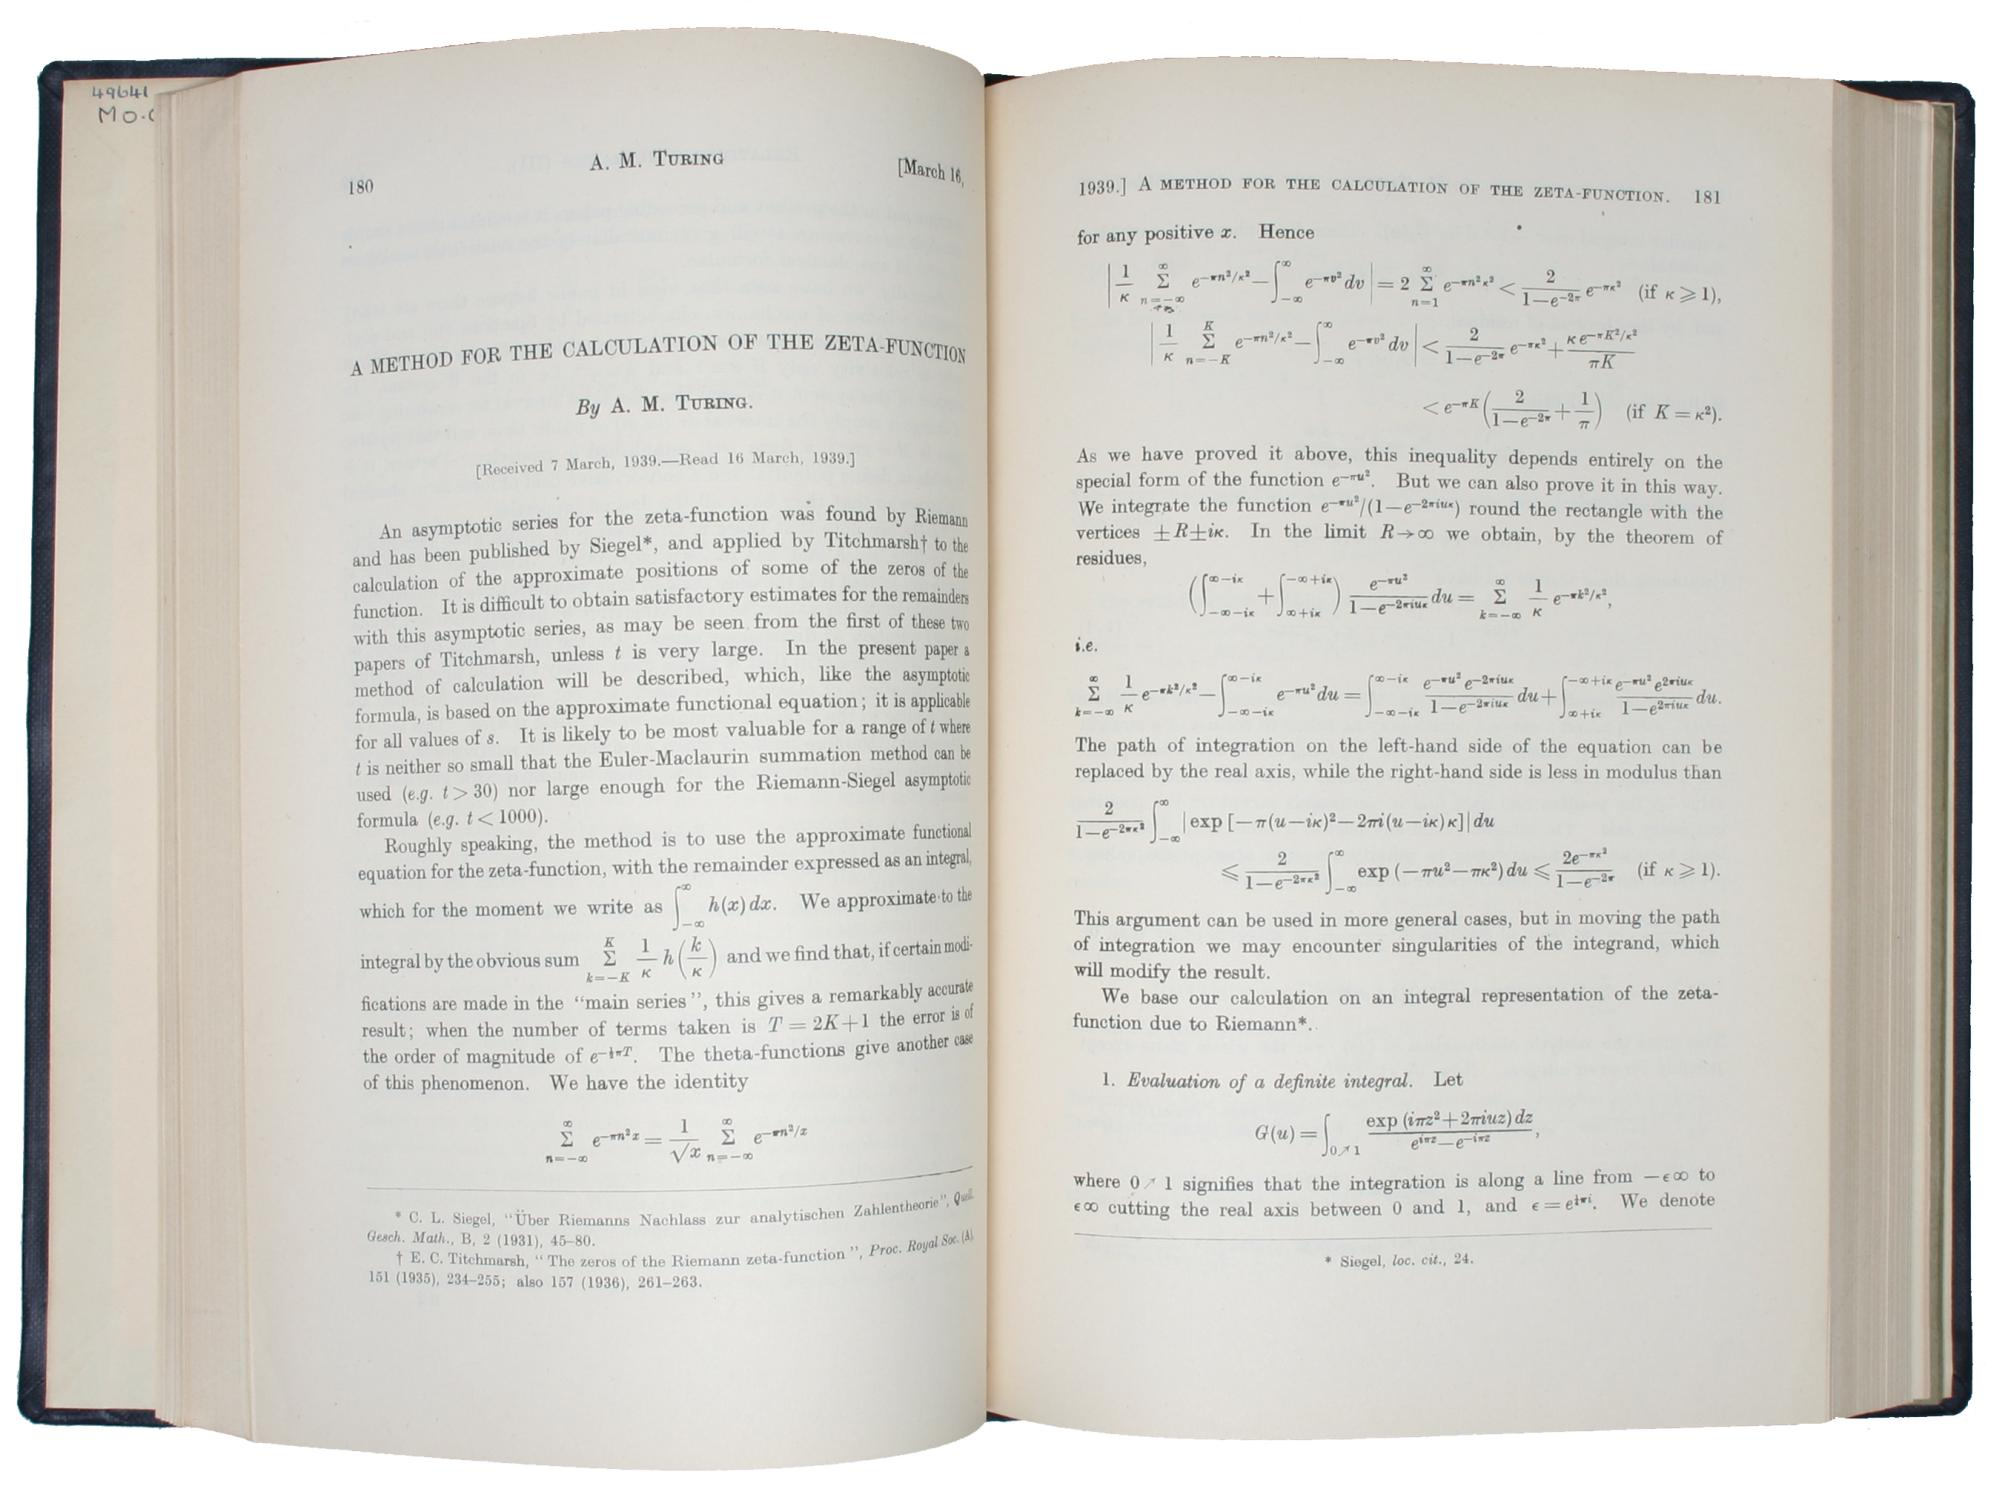 A Method for the Calculation of the